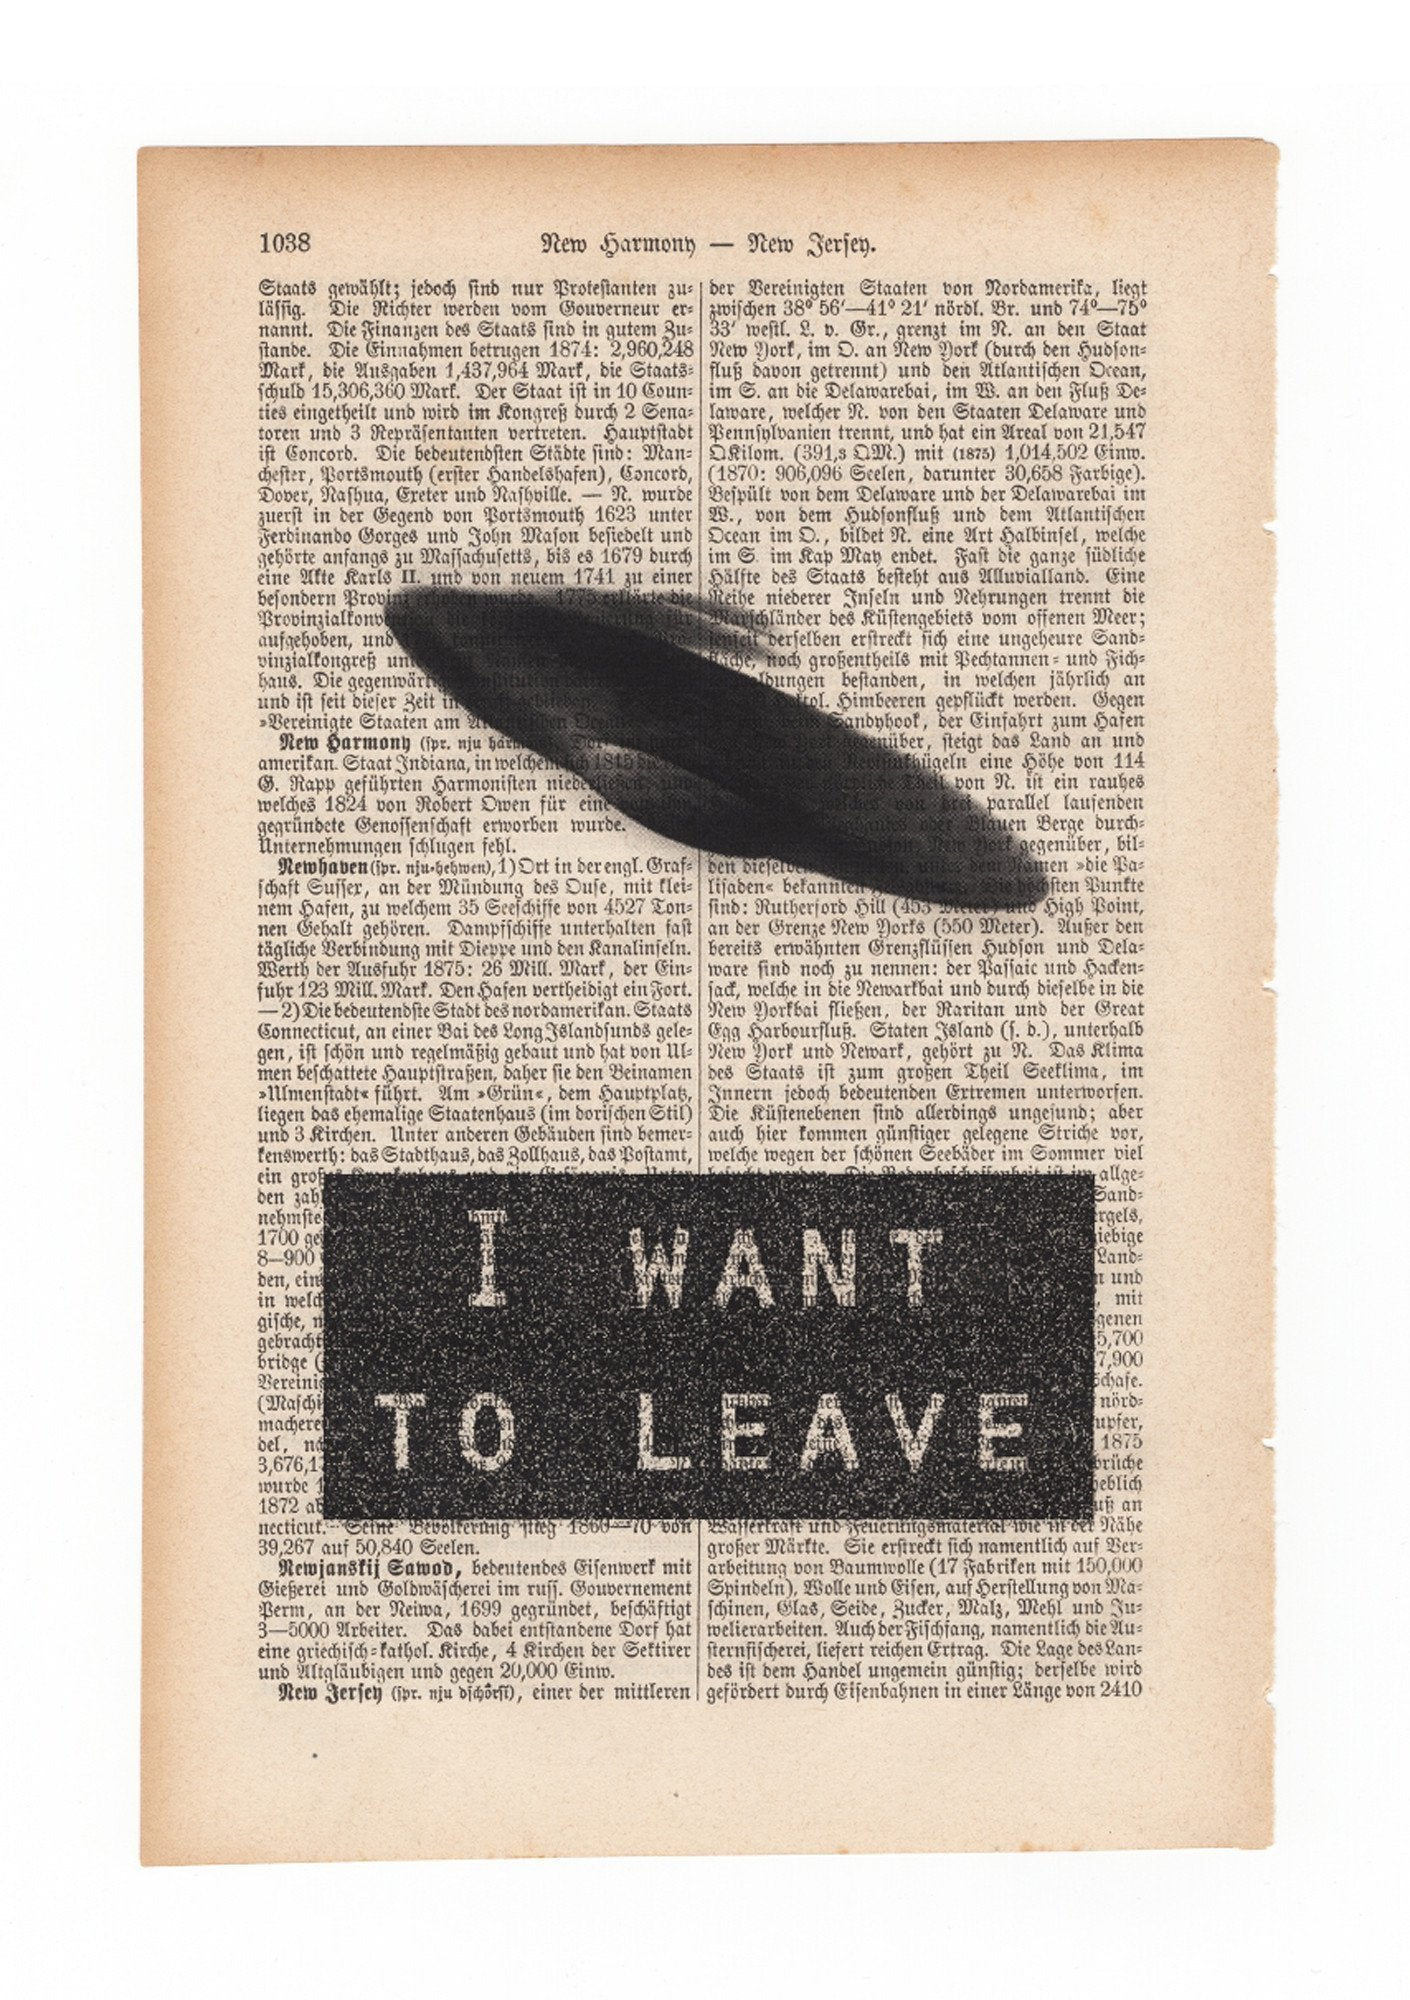 I want to leave - Art on Words